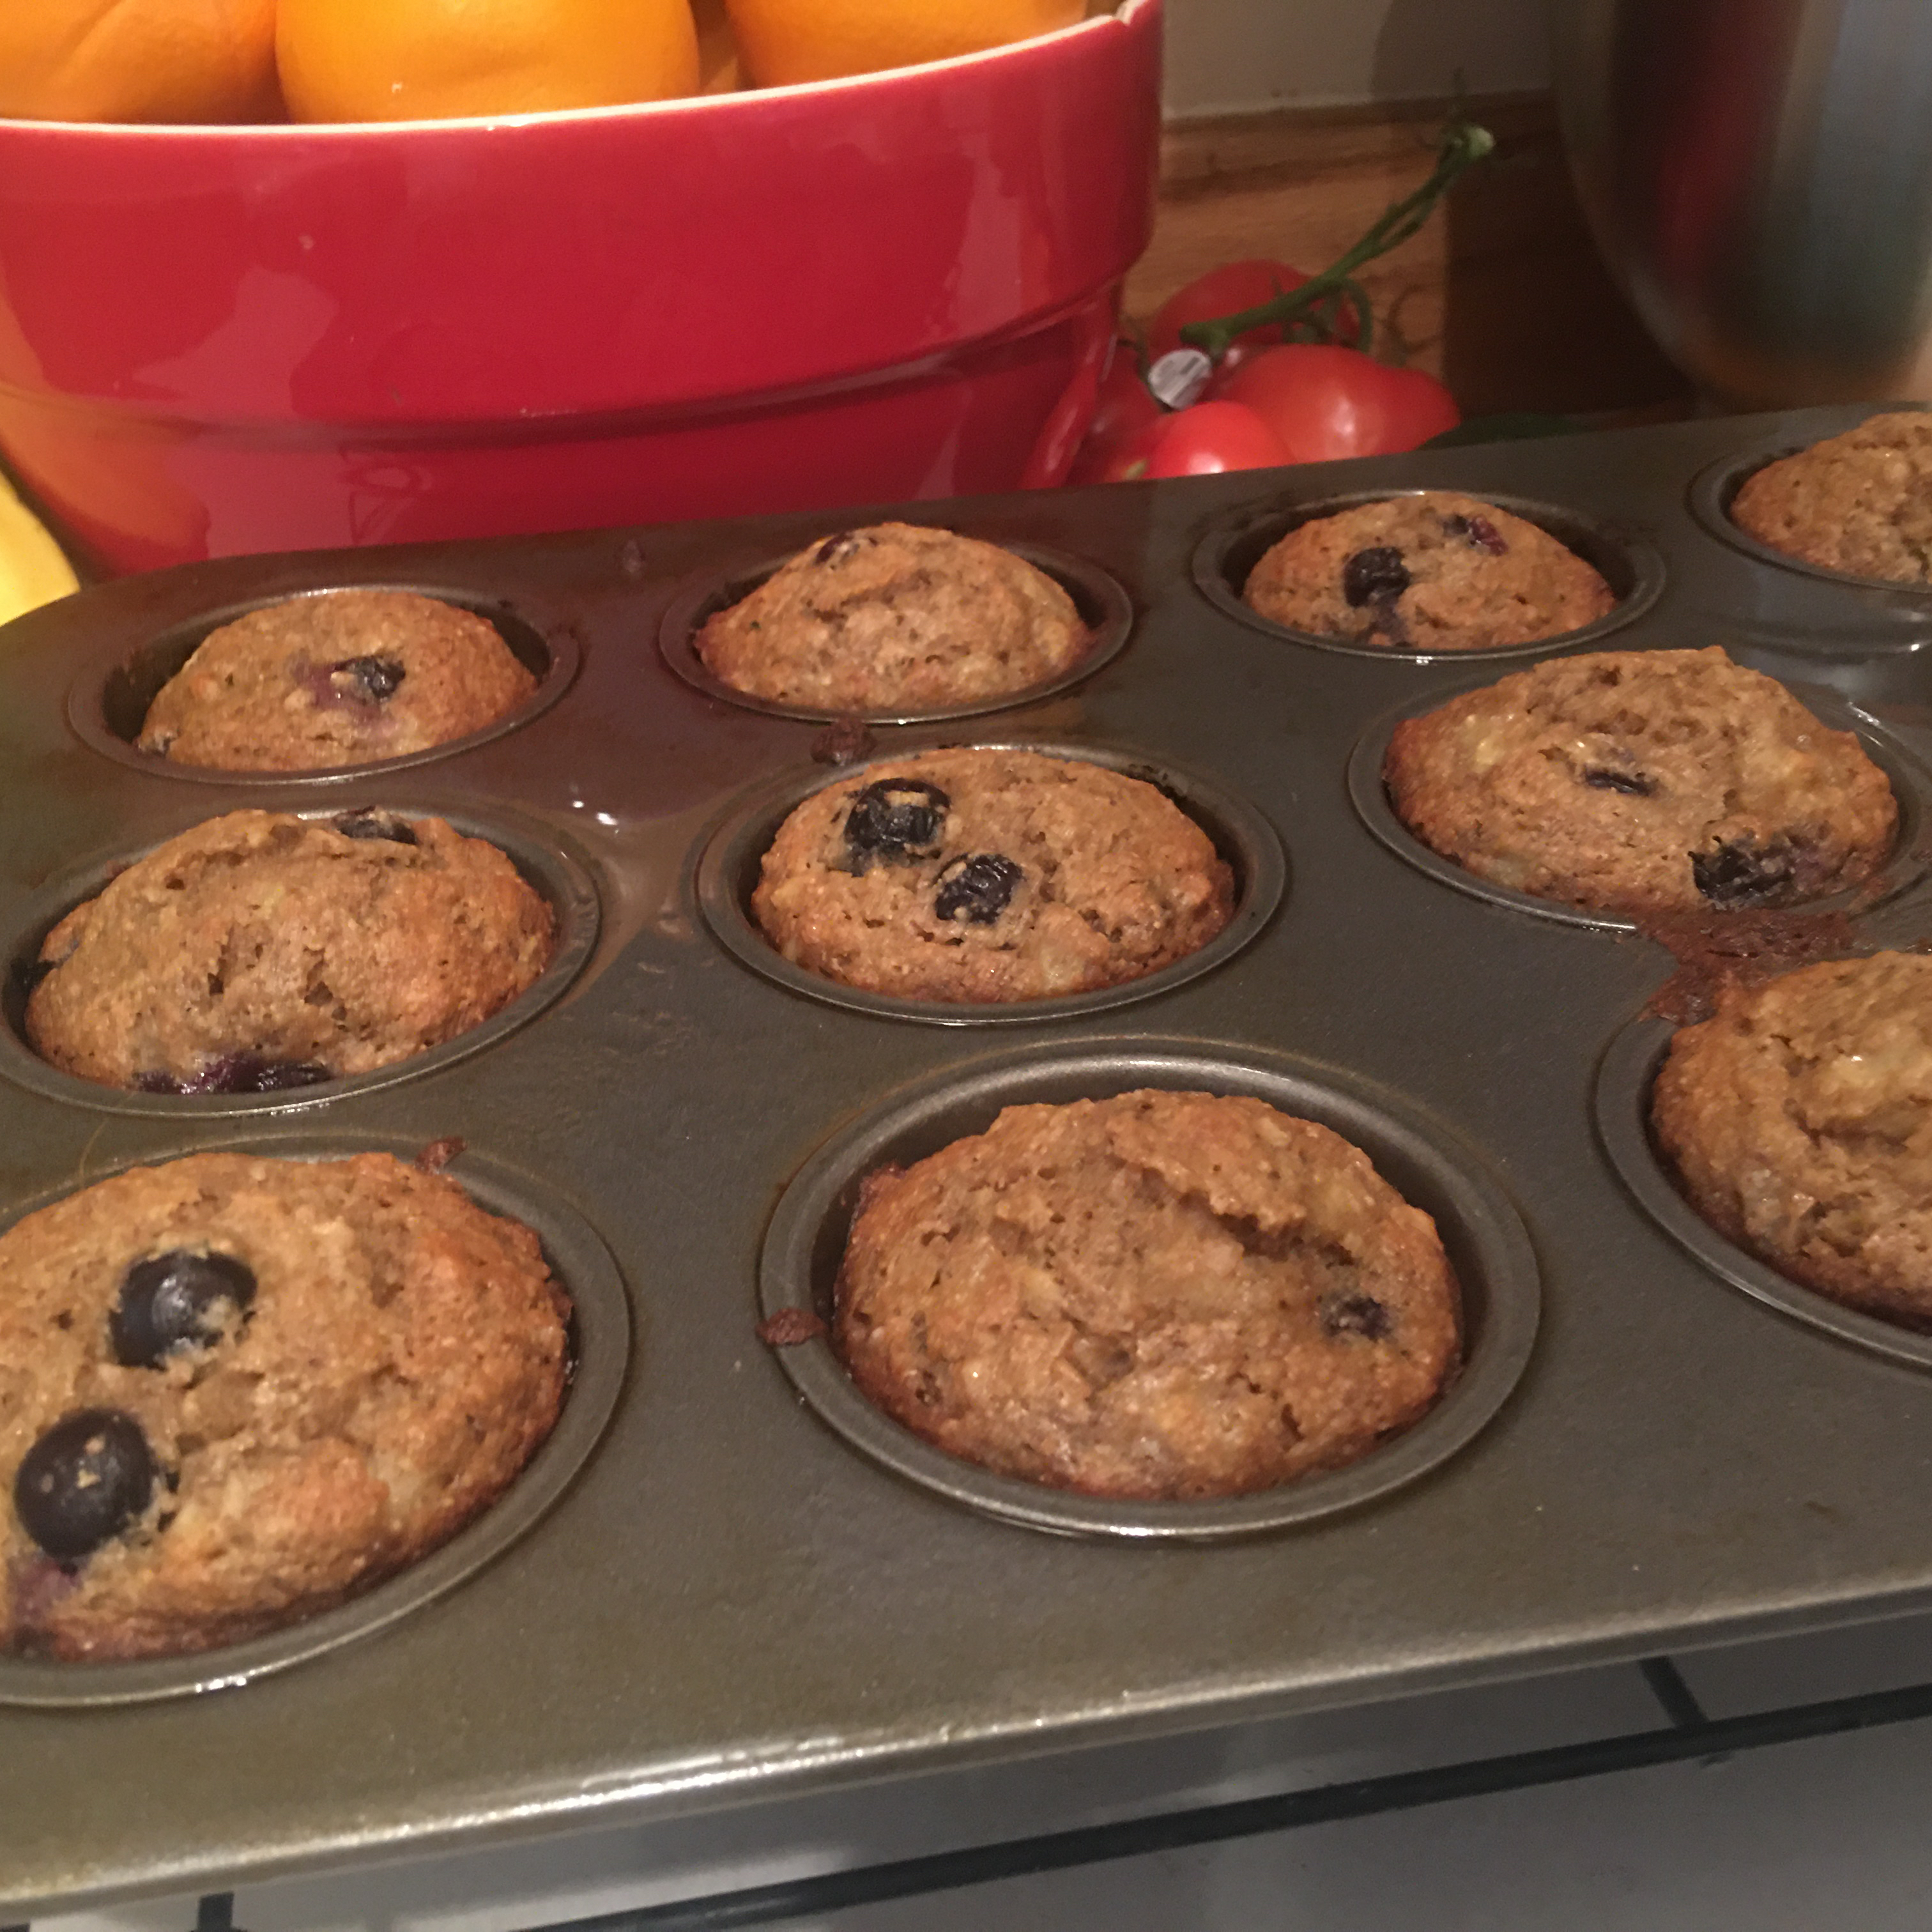 Delicious and Nutritious Whole Wheat Banana and Blueberry Muffins Keri Beirdneau